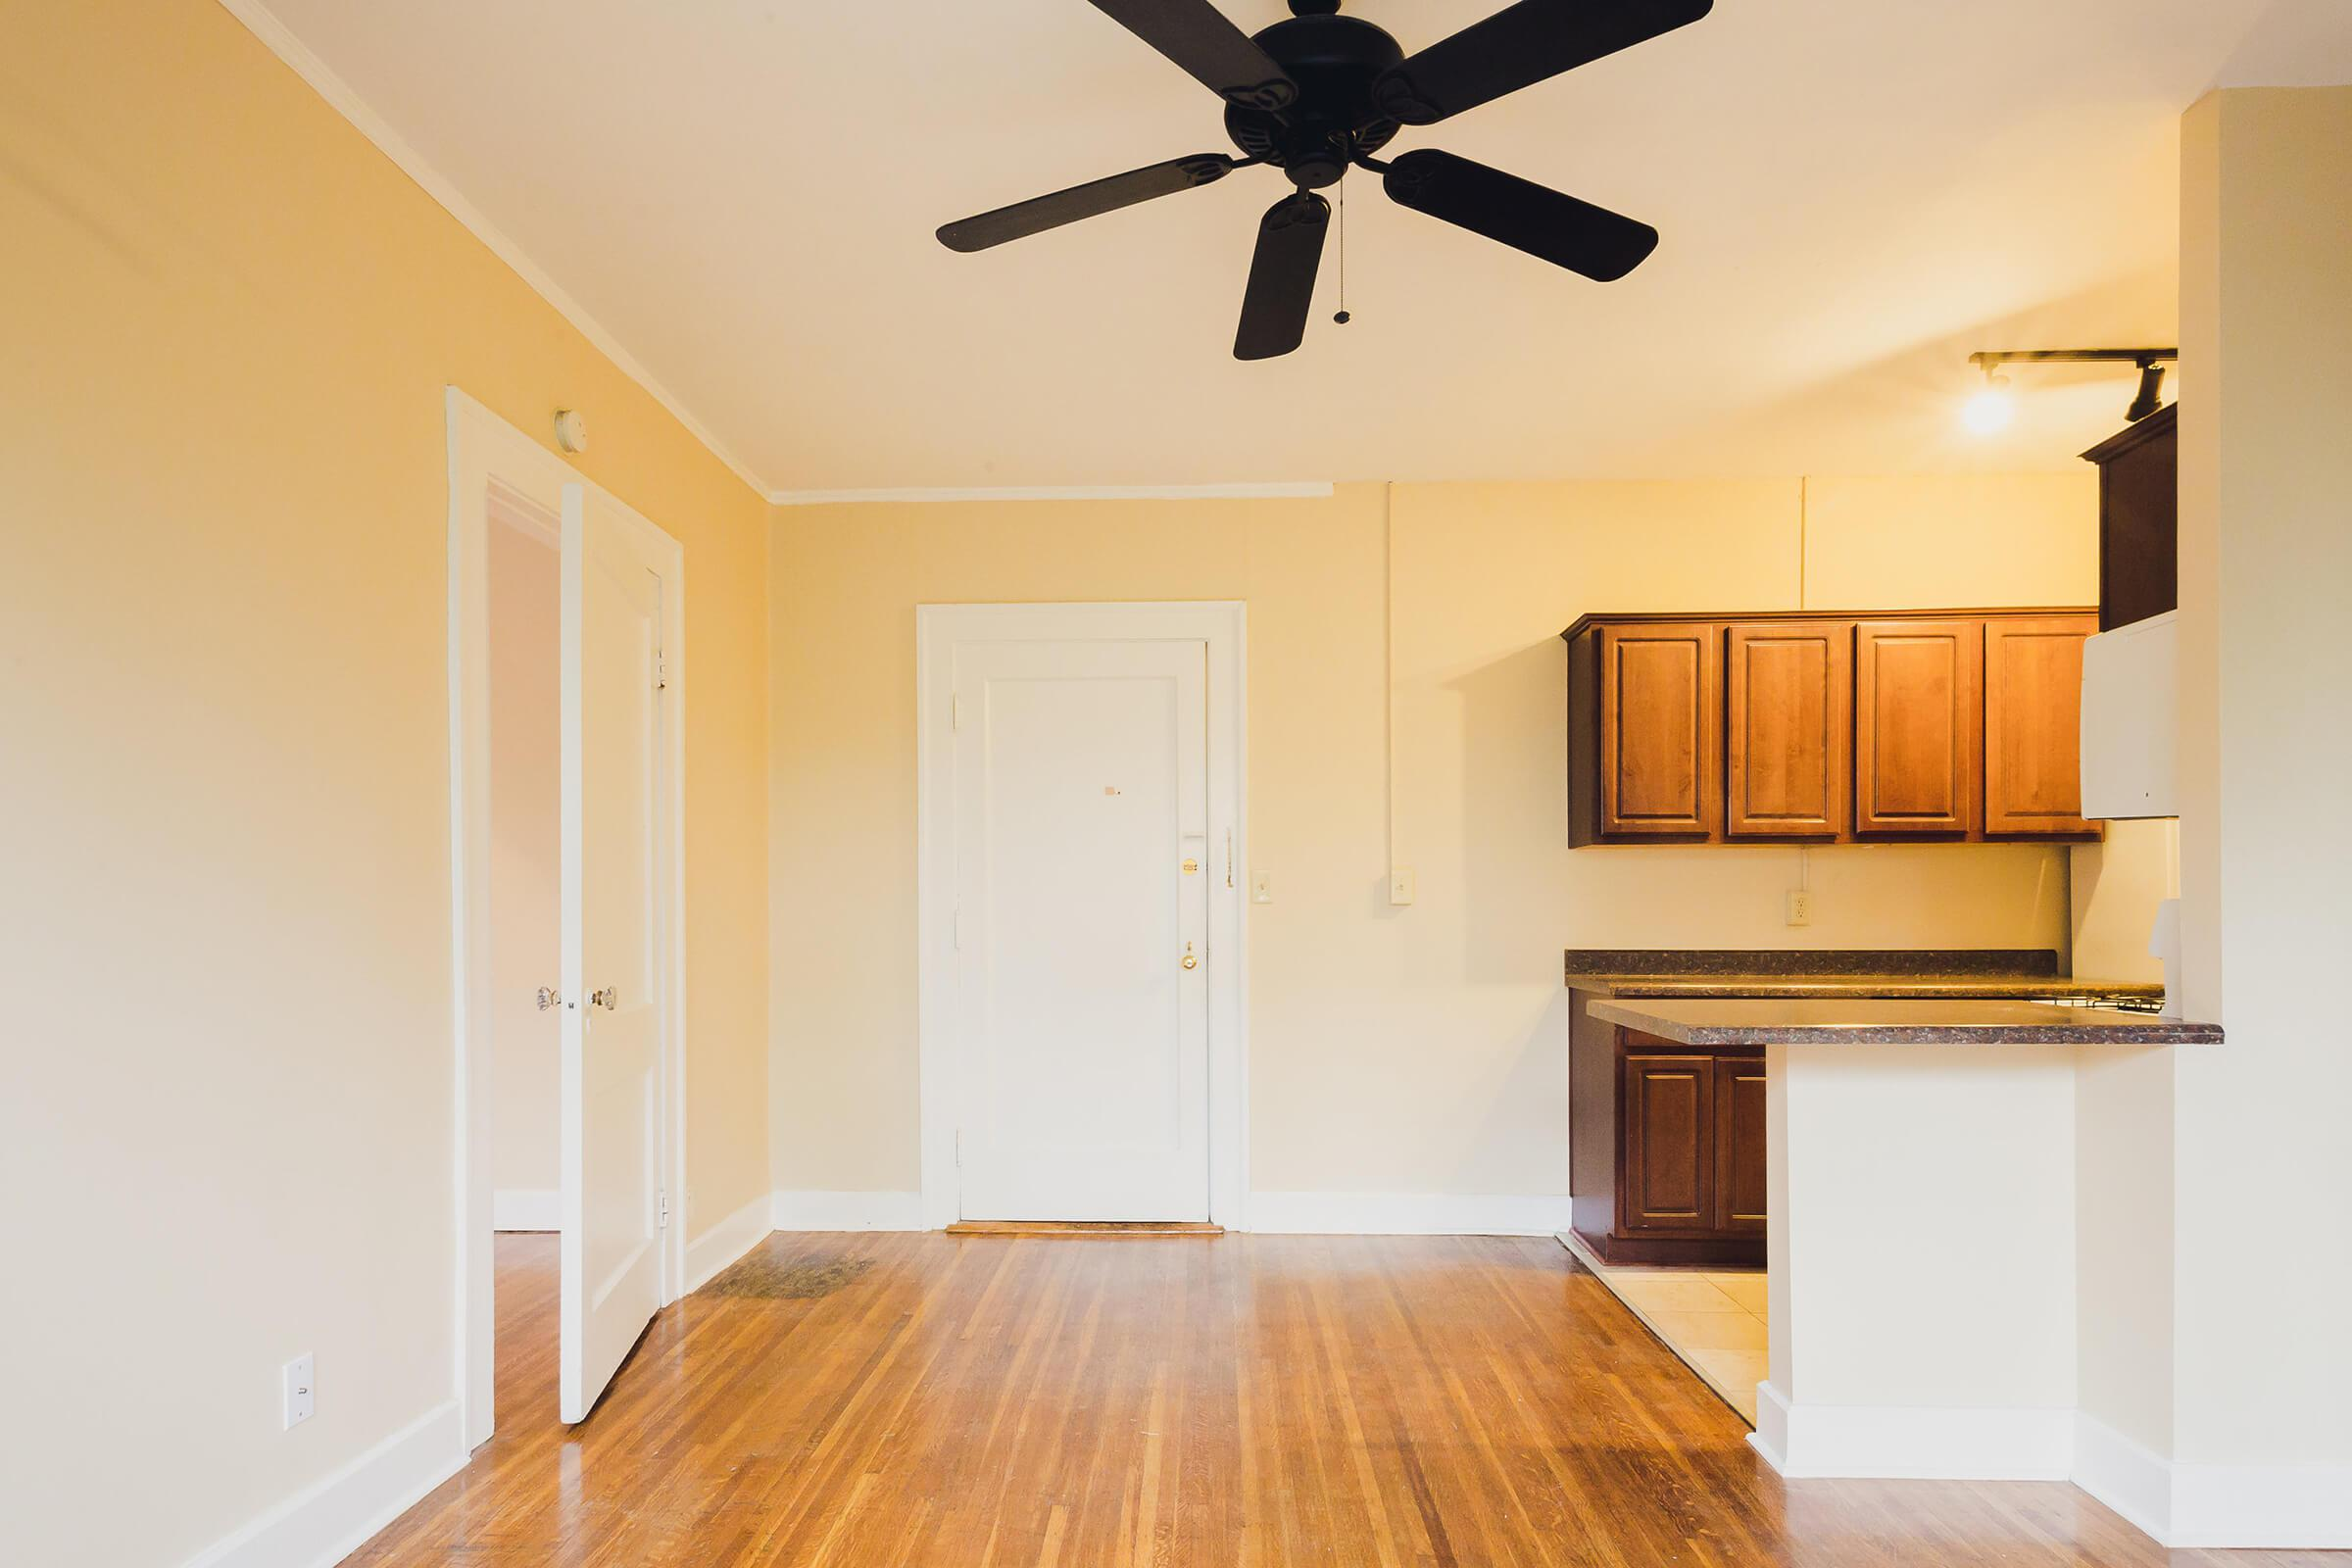 a kitchen with hard wood floors